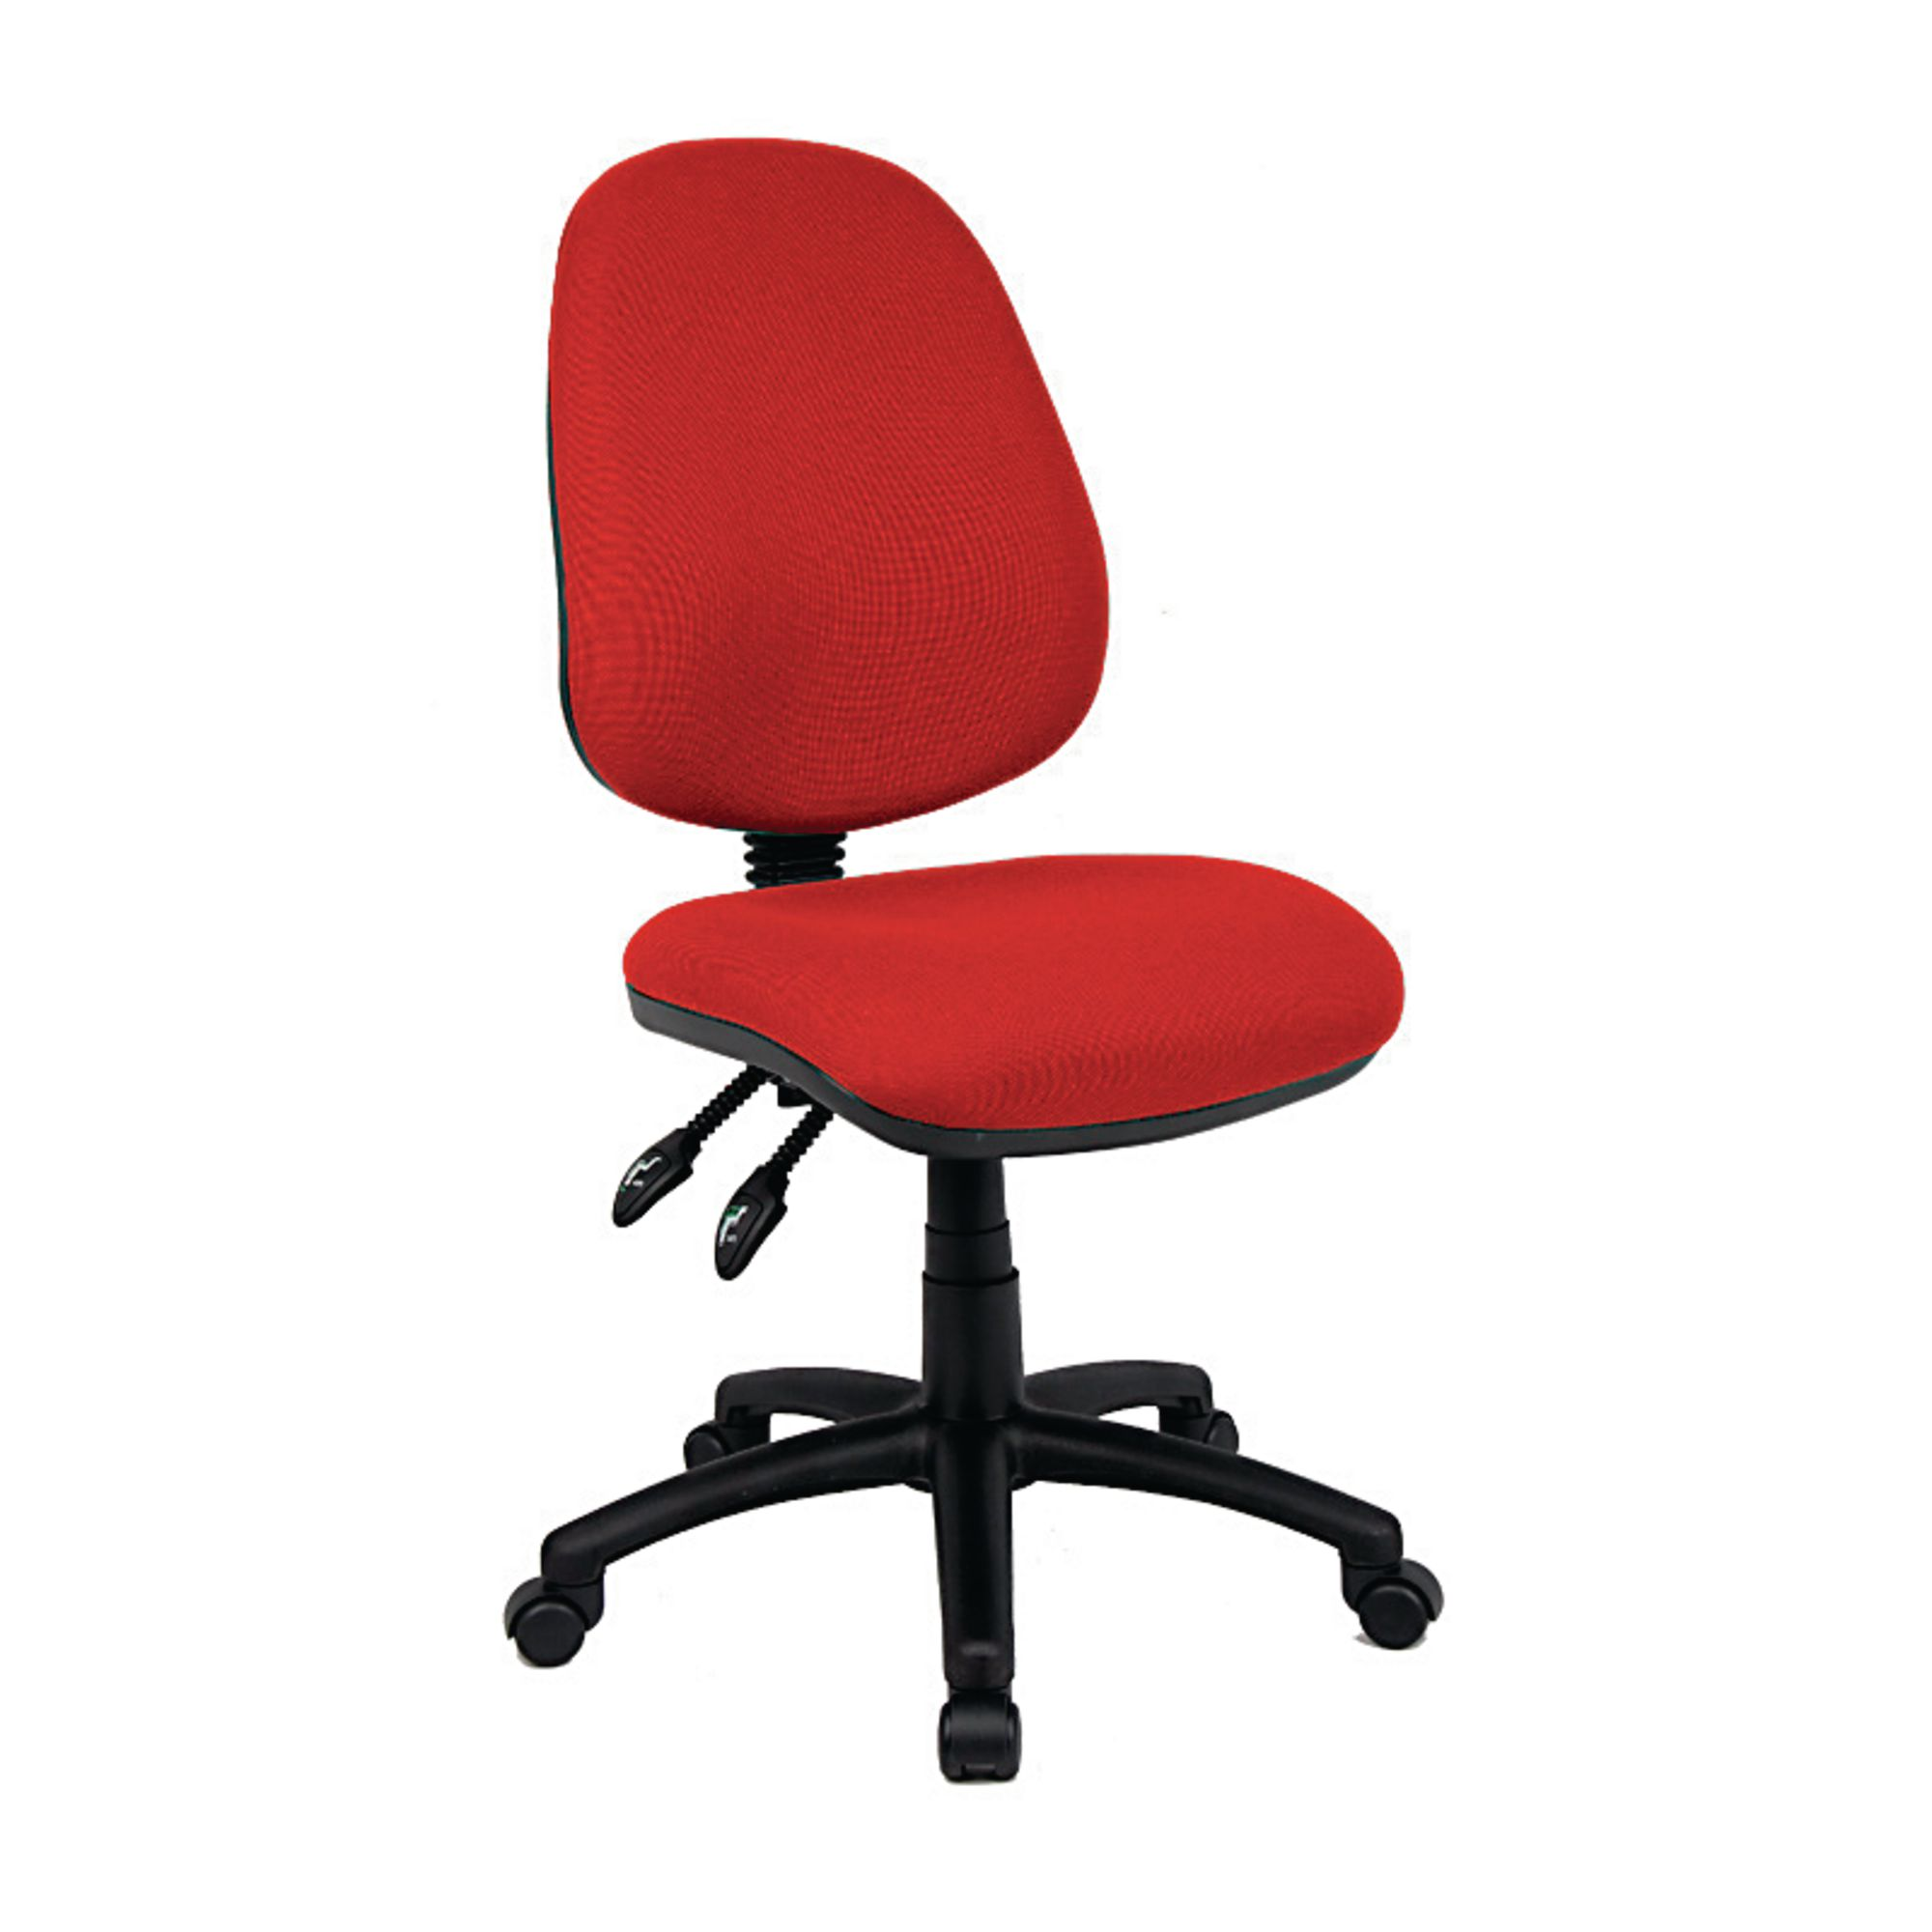 ergonomic chair levers best office for bad back operator no arms red hope education